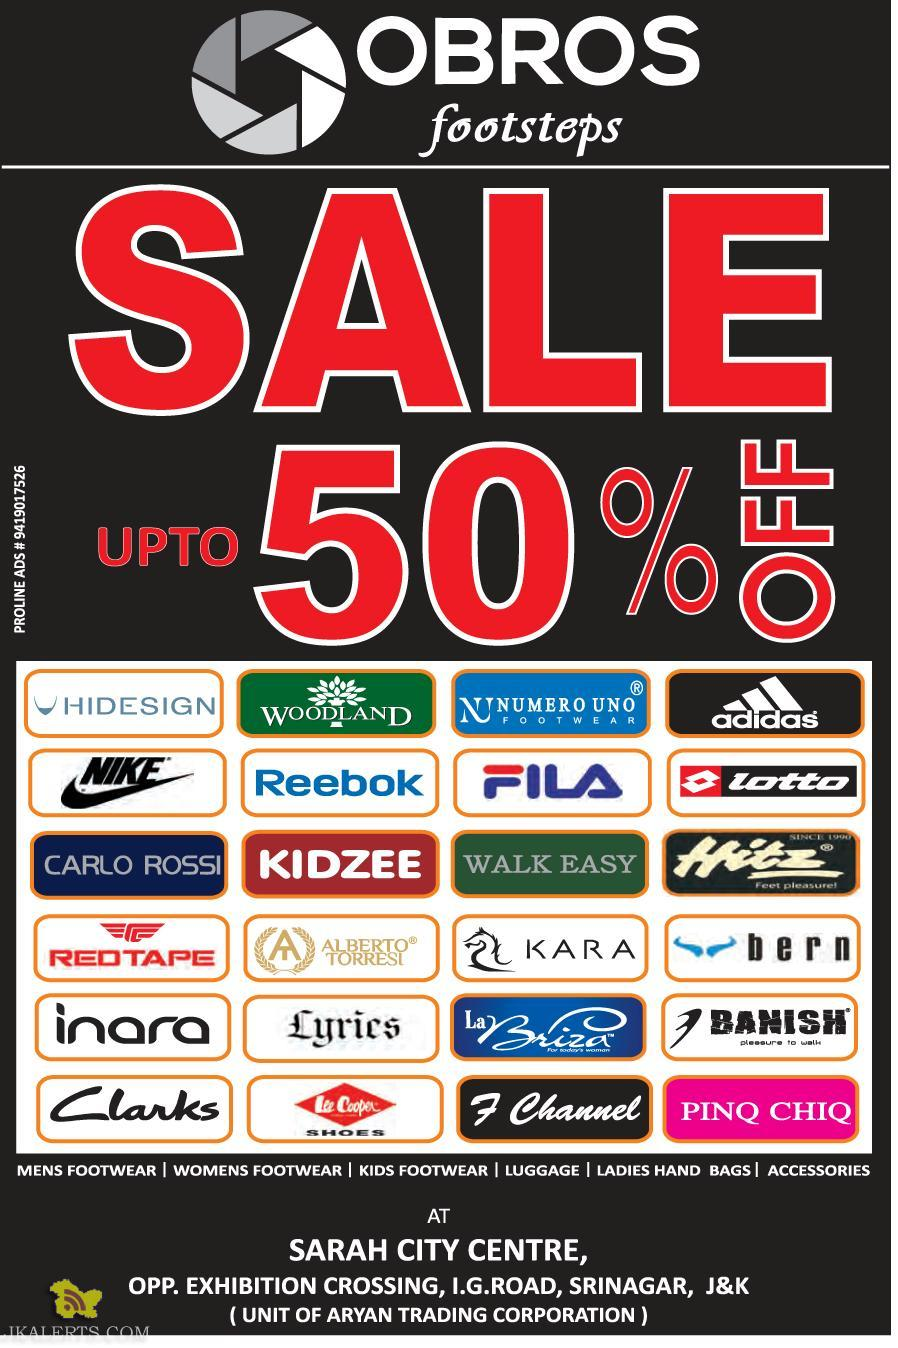 Sale MENS, WOMENS AND KIDS FOOTWEAR OBROS FOOTSTEPS